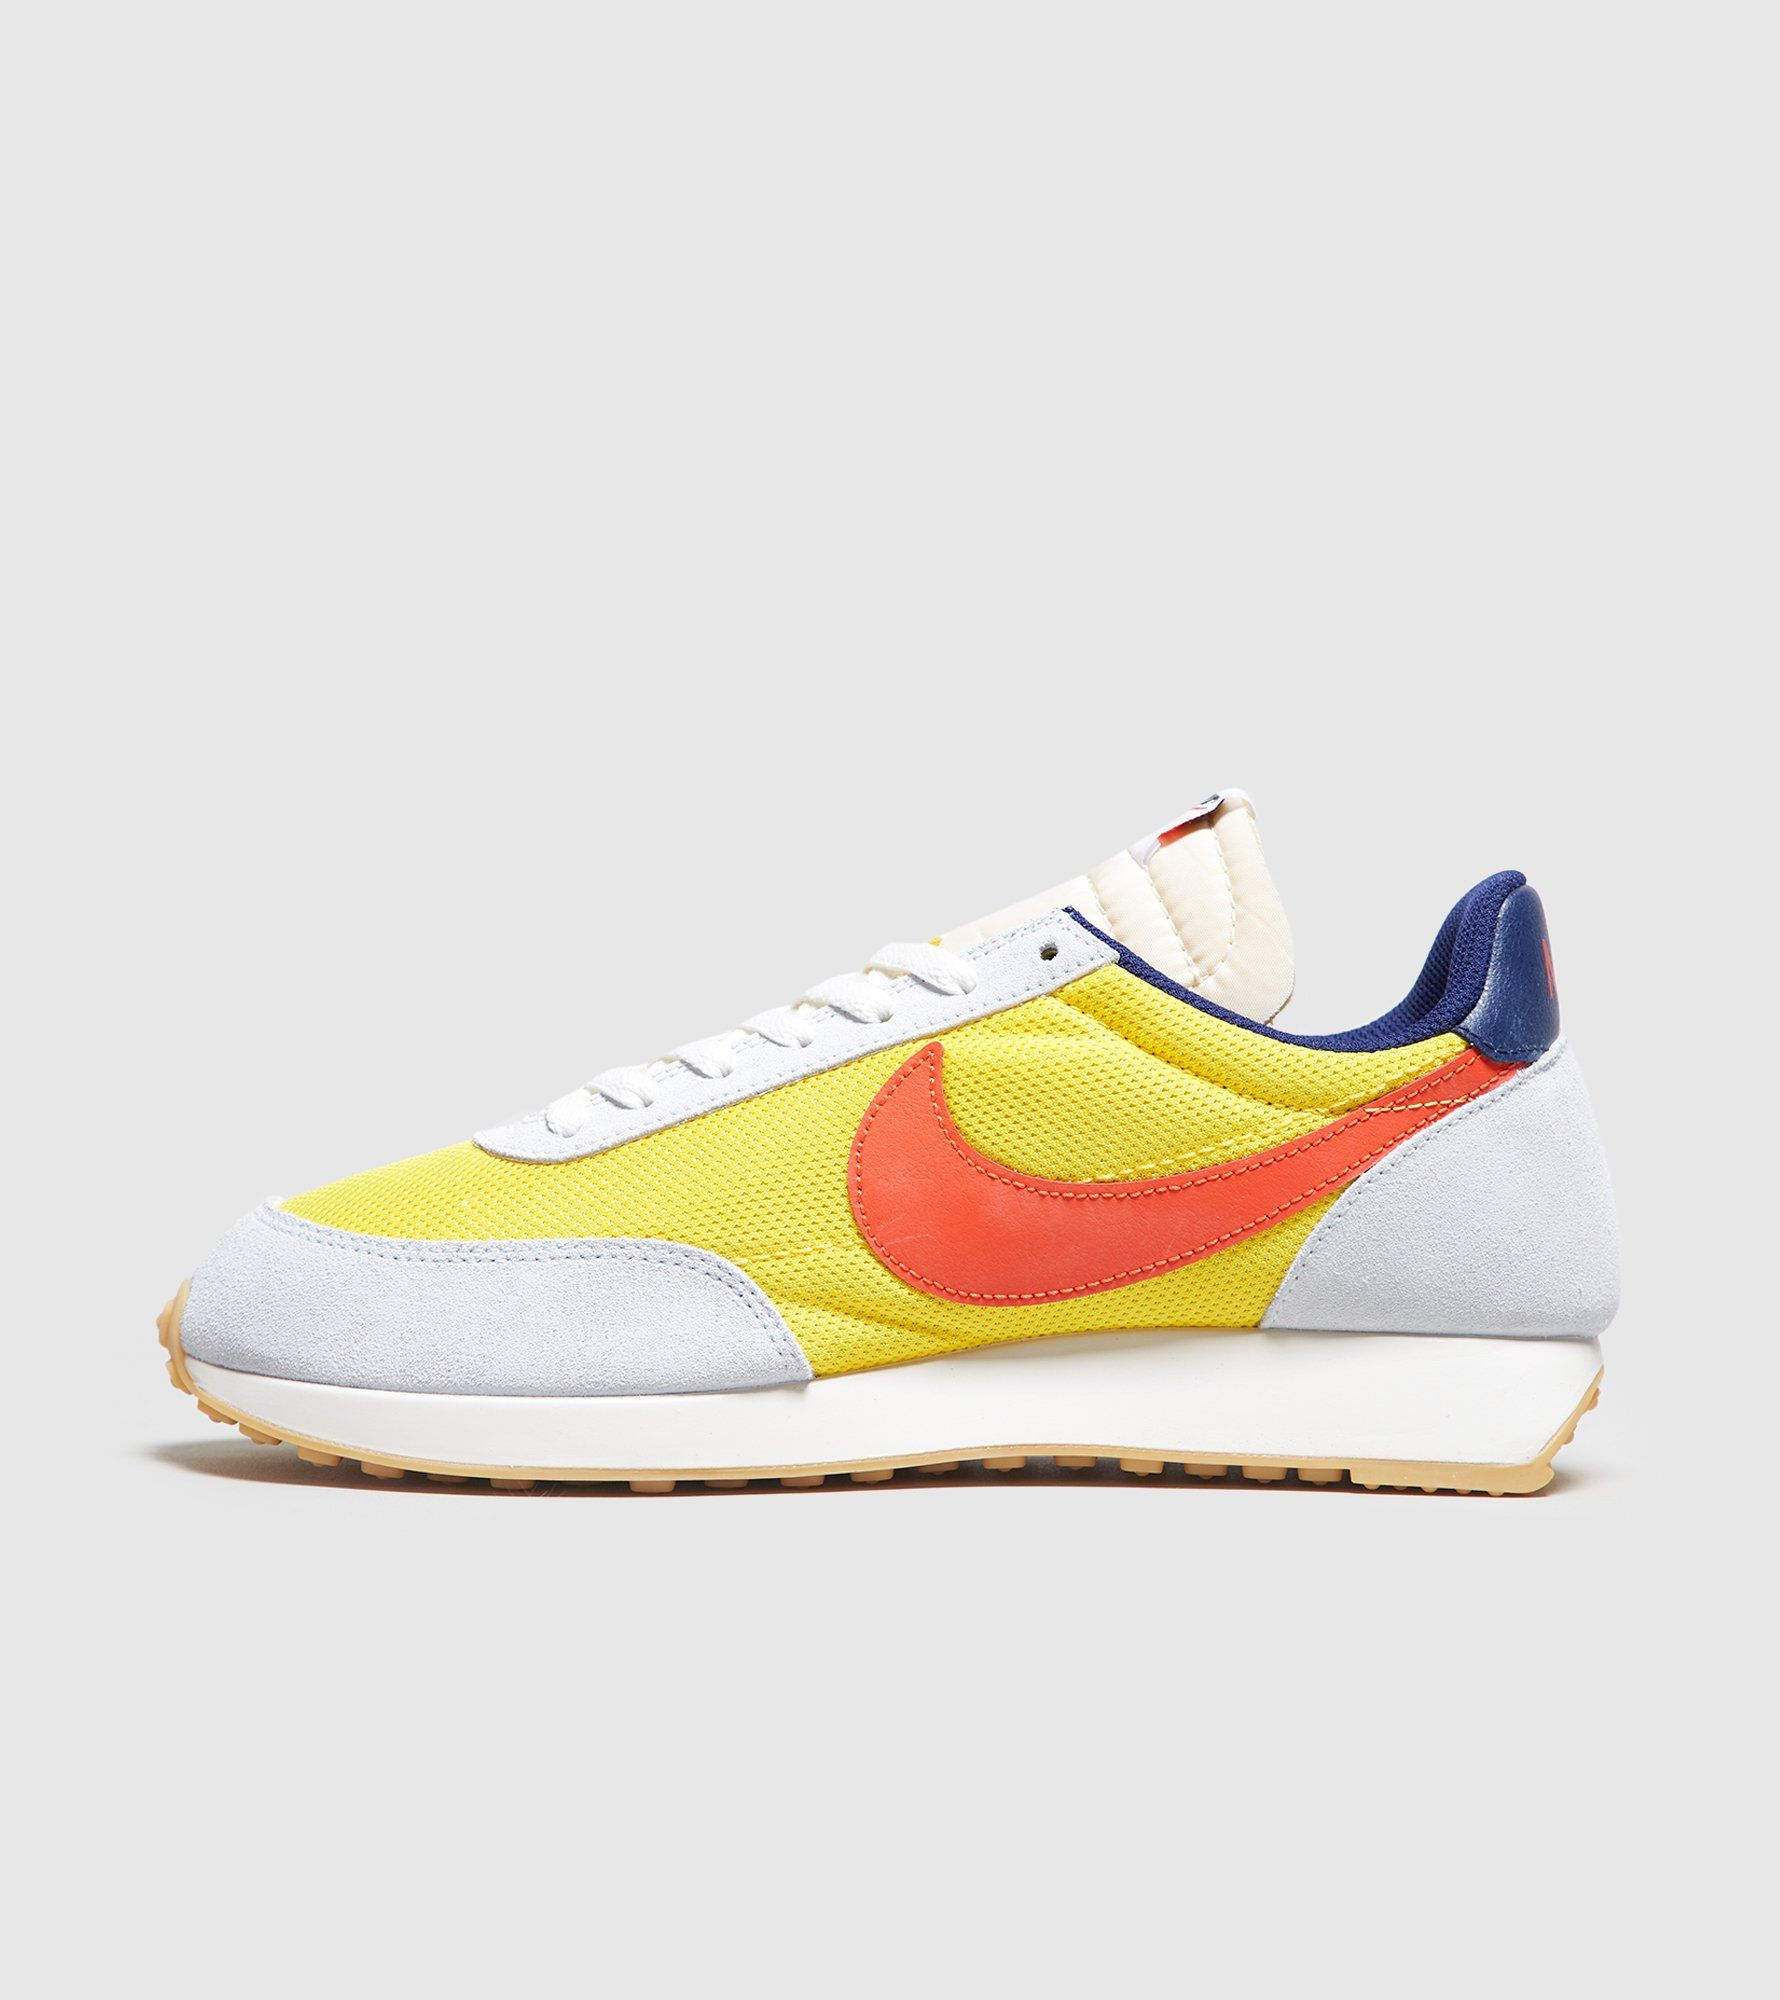 online store 2be22 a4ab8 Nike Air Tailwind 79 OG